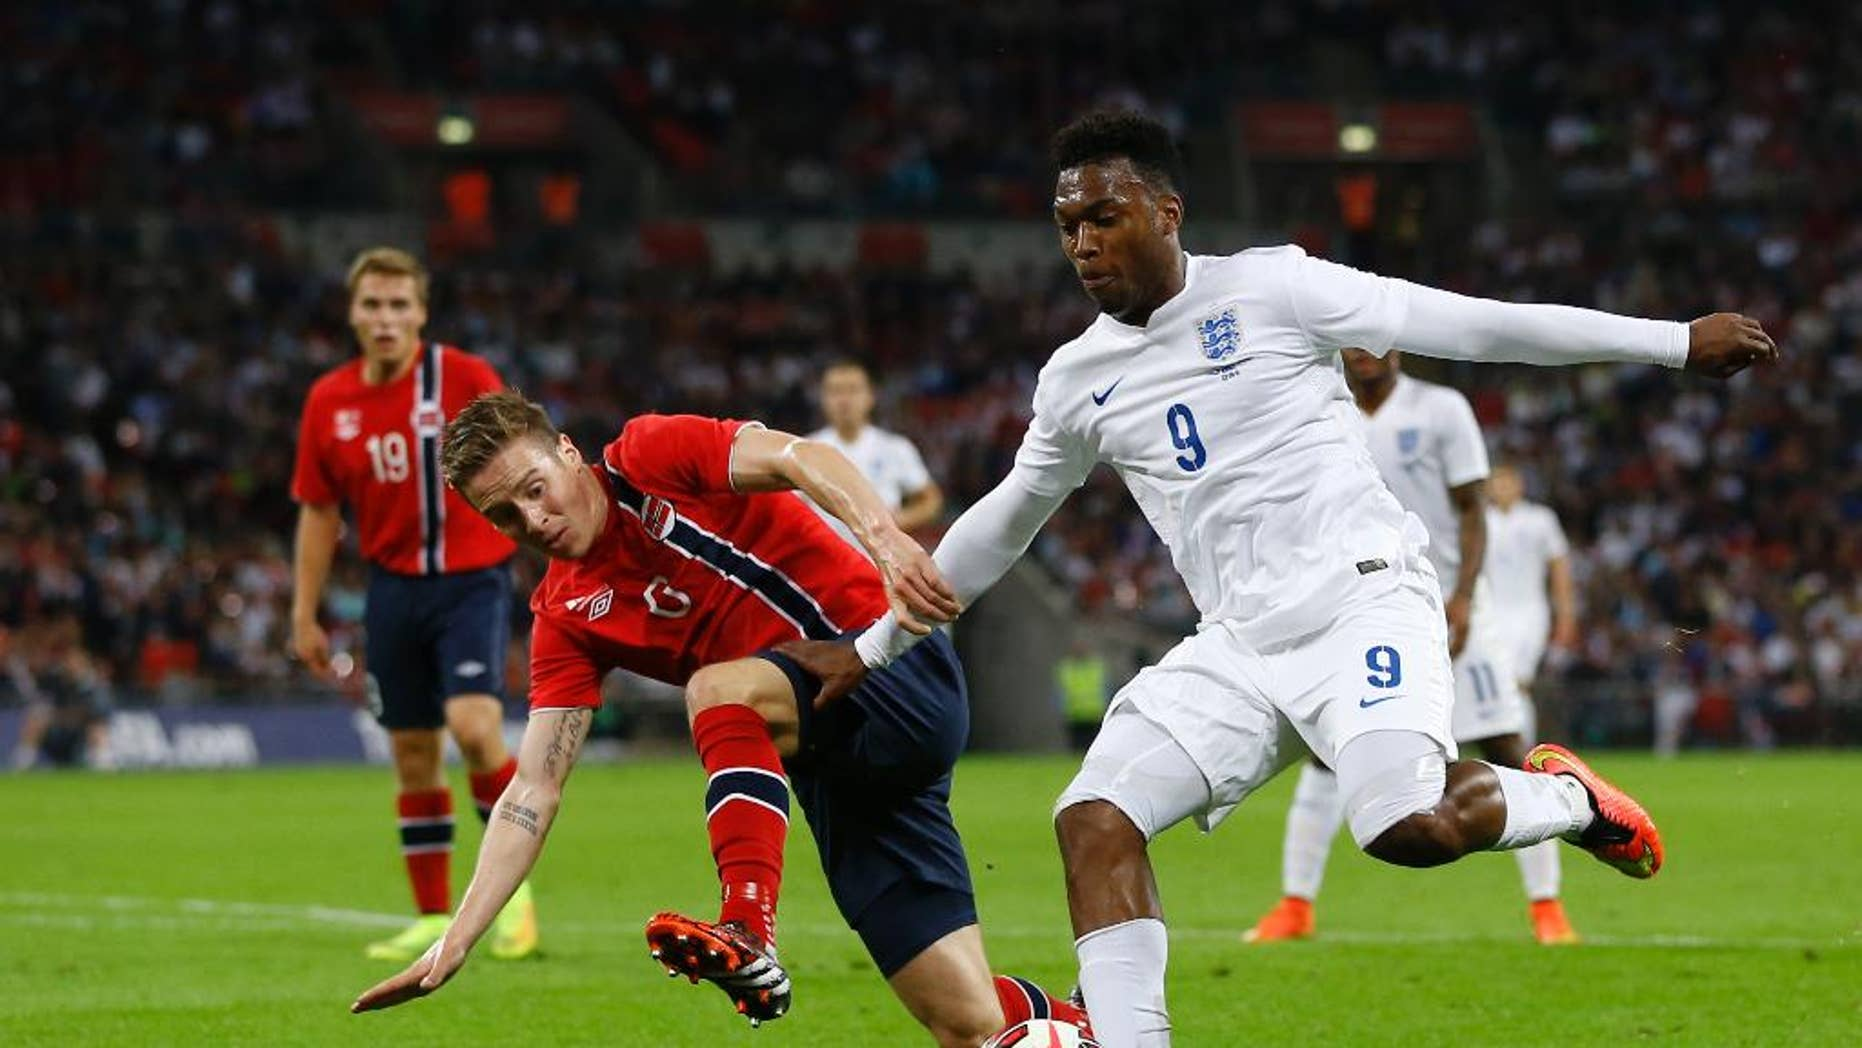 England's Daniel Sturridge, right, vies for the ball with Norway's Stefan Johansen during the international friendly soccer match between England and Norway at Wembley Stadium in London, Wednesday, Sept. 3, 2014. (AP Photo/Kirsty Wigglesworth)